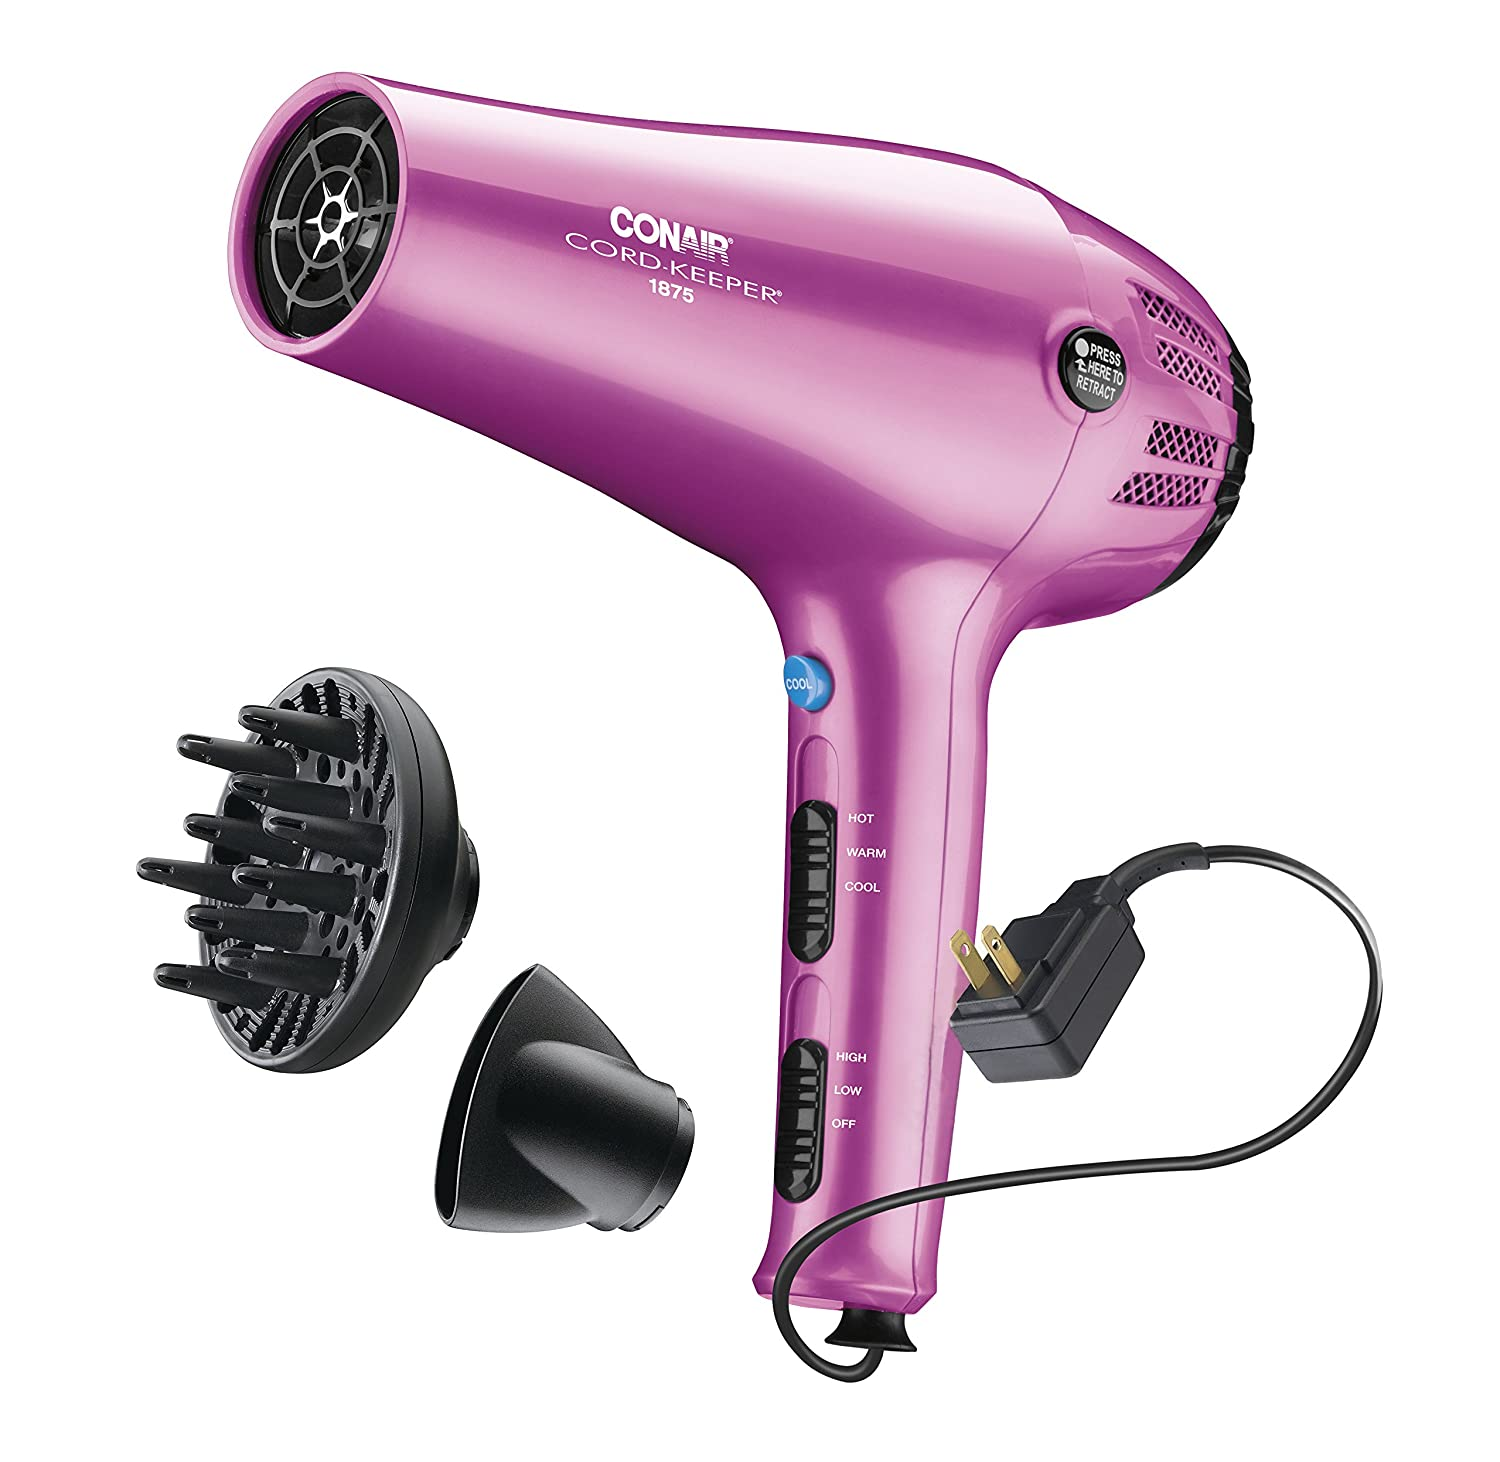 Conair 1875 Watt Cord-Keeper Hair Dryer with Ionic Conditioning; Pink 209BCR